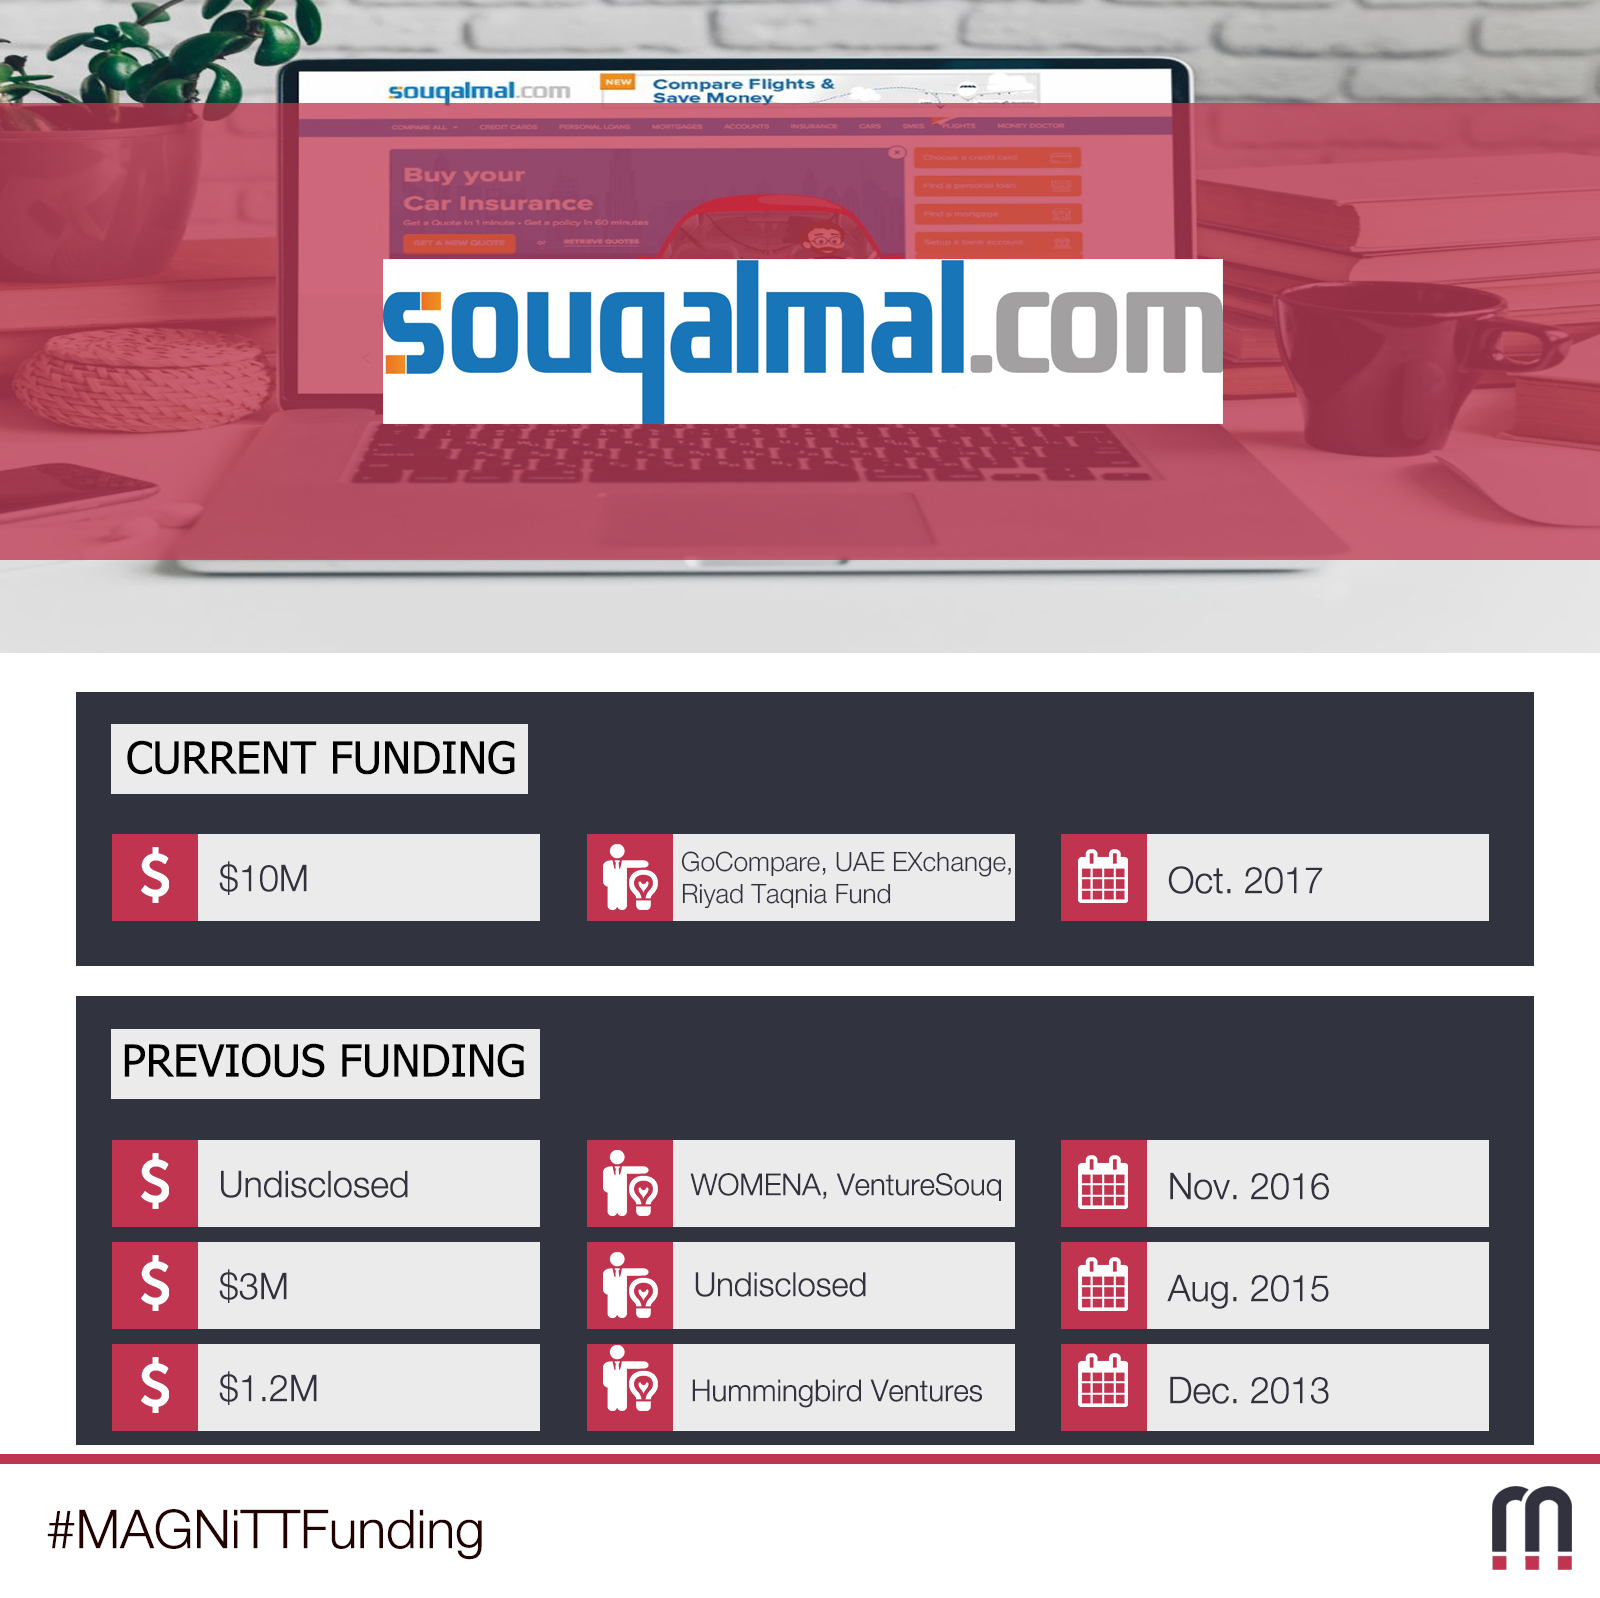 Leading UK Price Comparison Website to Invest in UAE Fintech Company Souqalmal.com